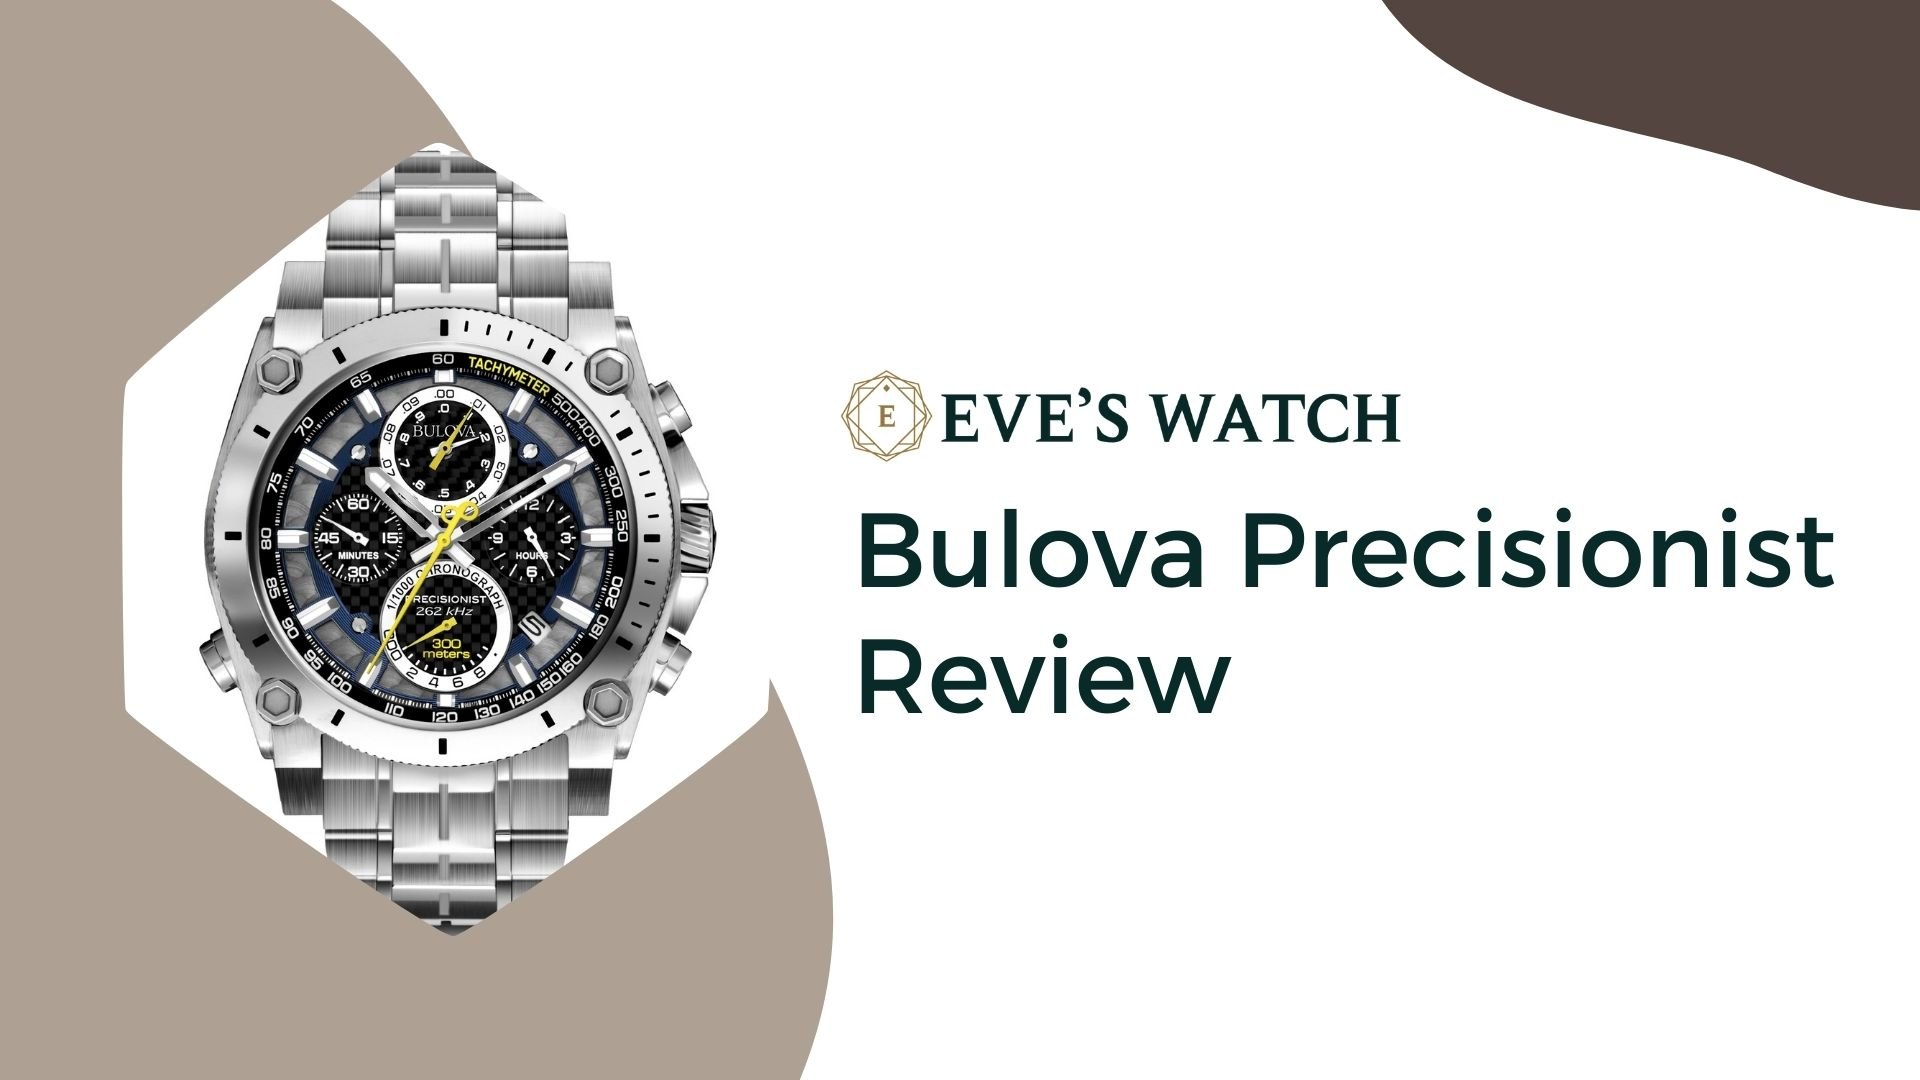 Looking for the most accurate chronograph watches for a reasonable price? Here is the Bulova Precisionist Review!